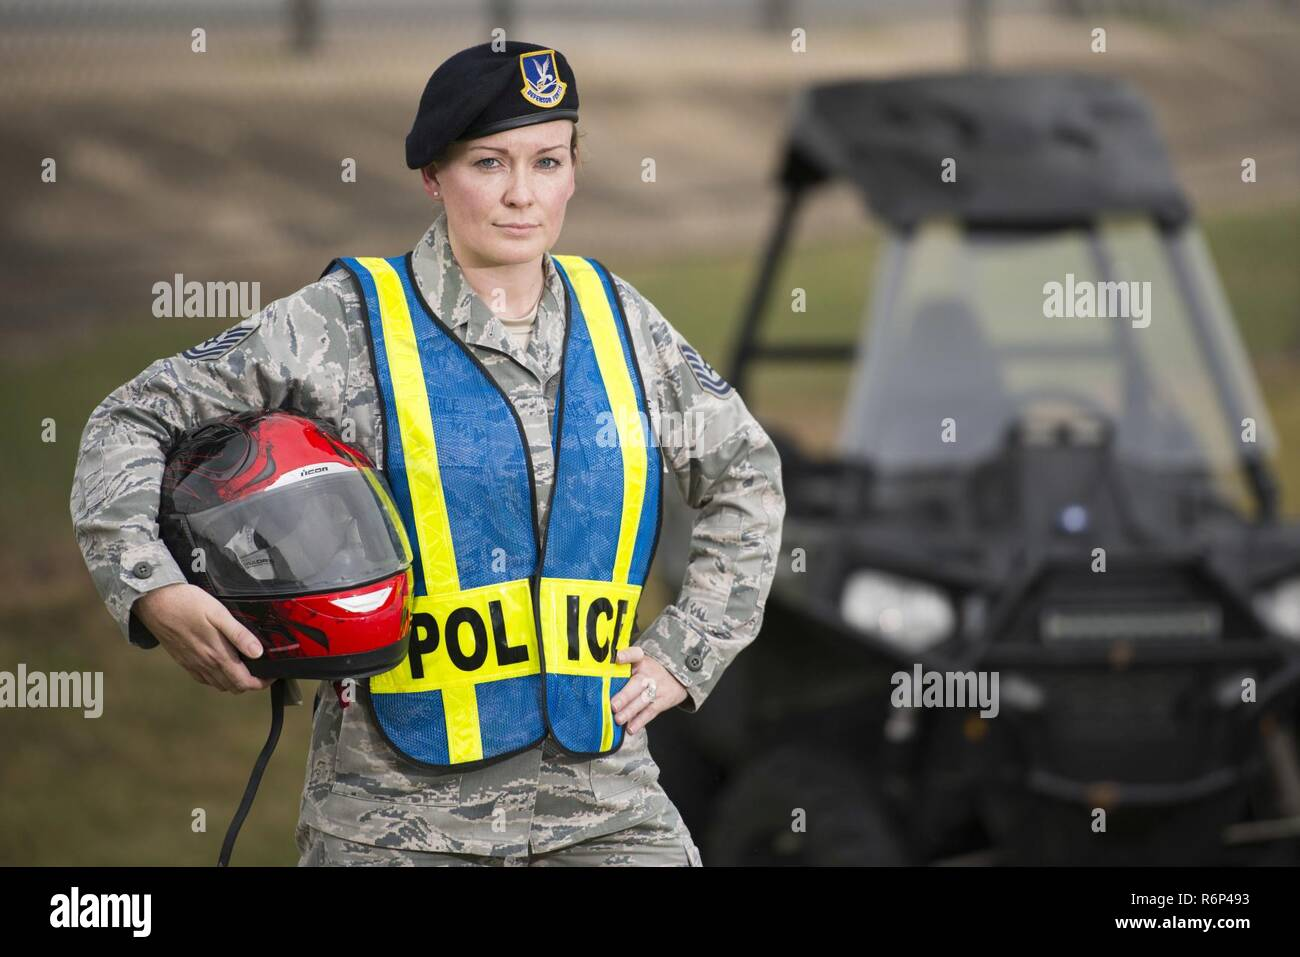 Technical Sgt. Michelle Aberle, 802nd Security Forces Squadron installation security, poses for a photo after conducting a security check on the base fence line May 9, 2017, at Joint Base San Antonio-Lackland, Texas.  Aberle and Turner provide force protection for base personnel, equipment and facilities from threats to include intrusion by unauthorized people. - Stock Image